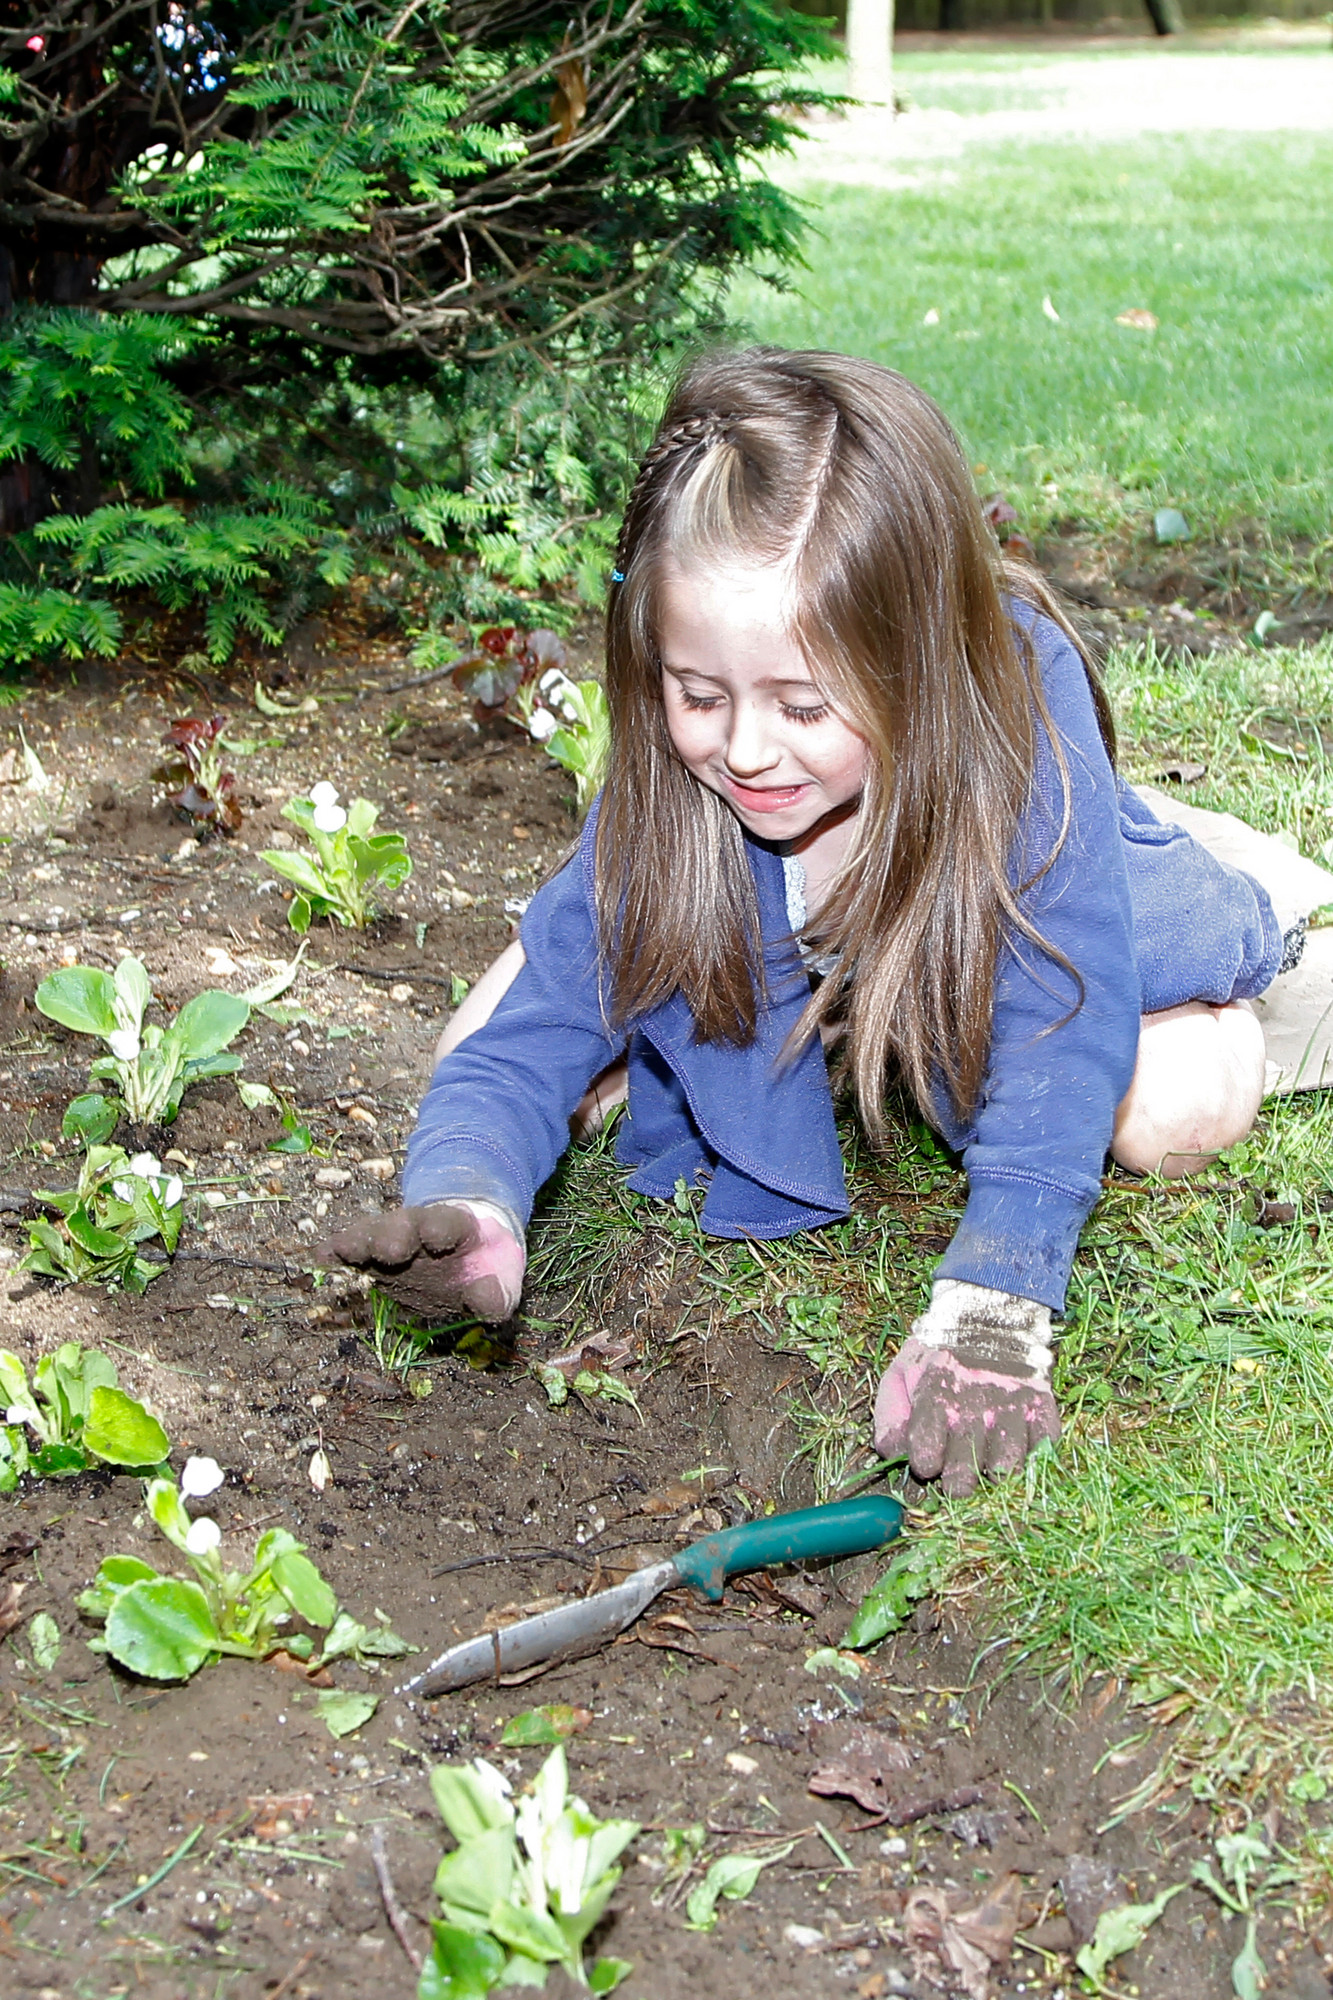 Six-year old Margauz Rivara, a Daisy from Troop 808, was hard at work planting.